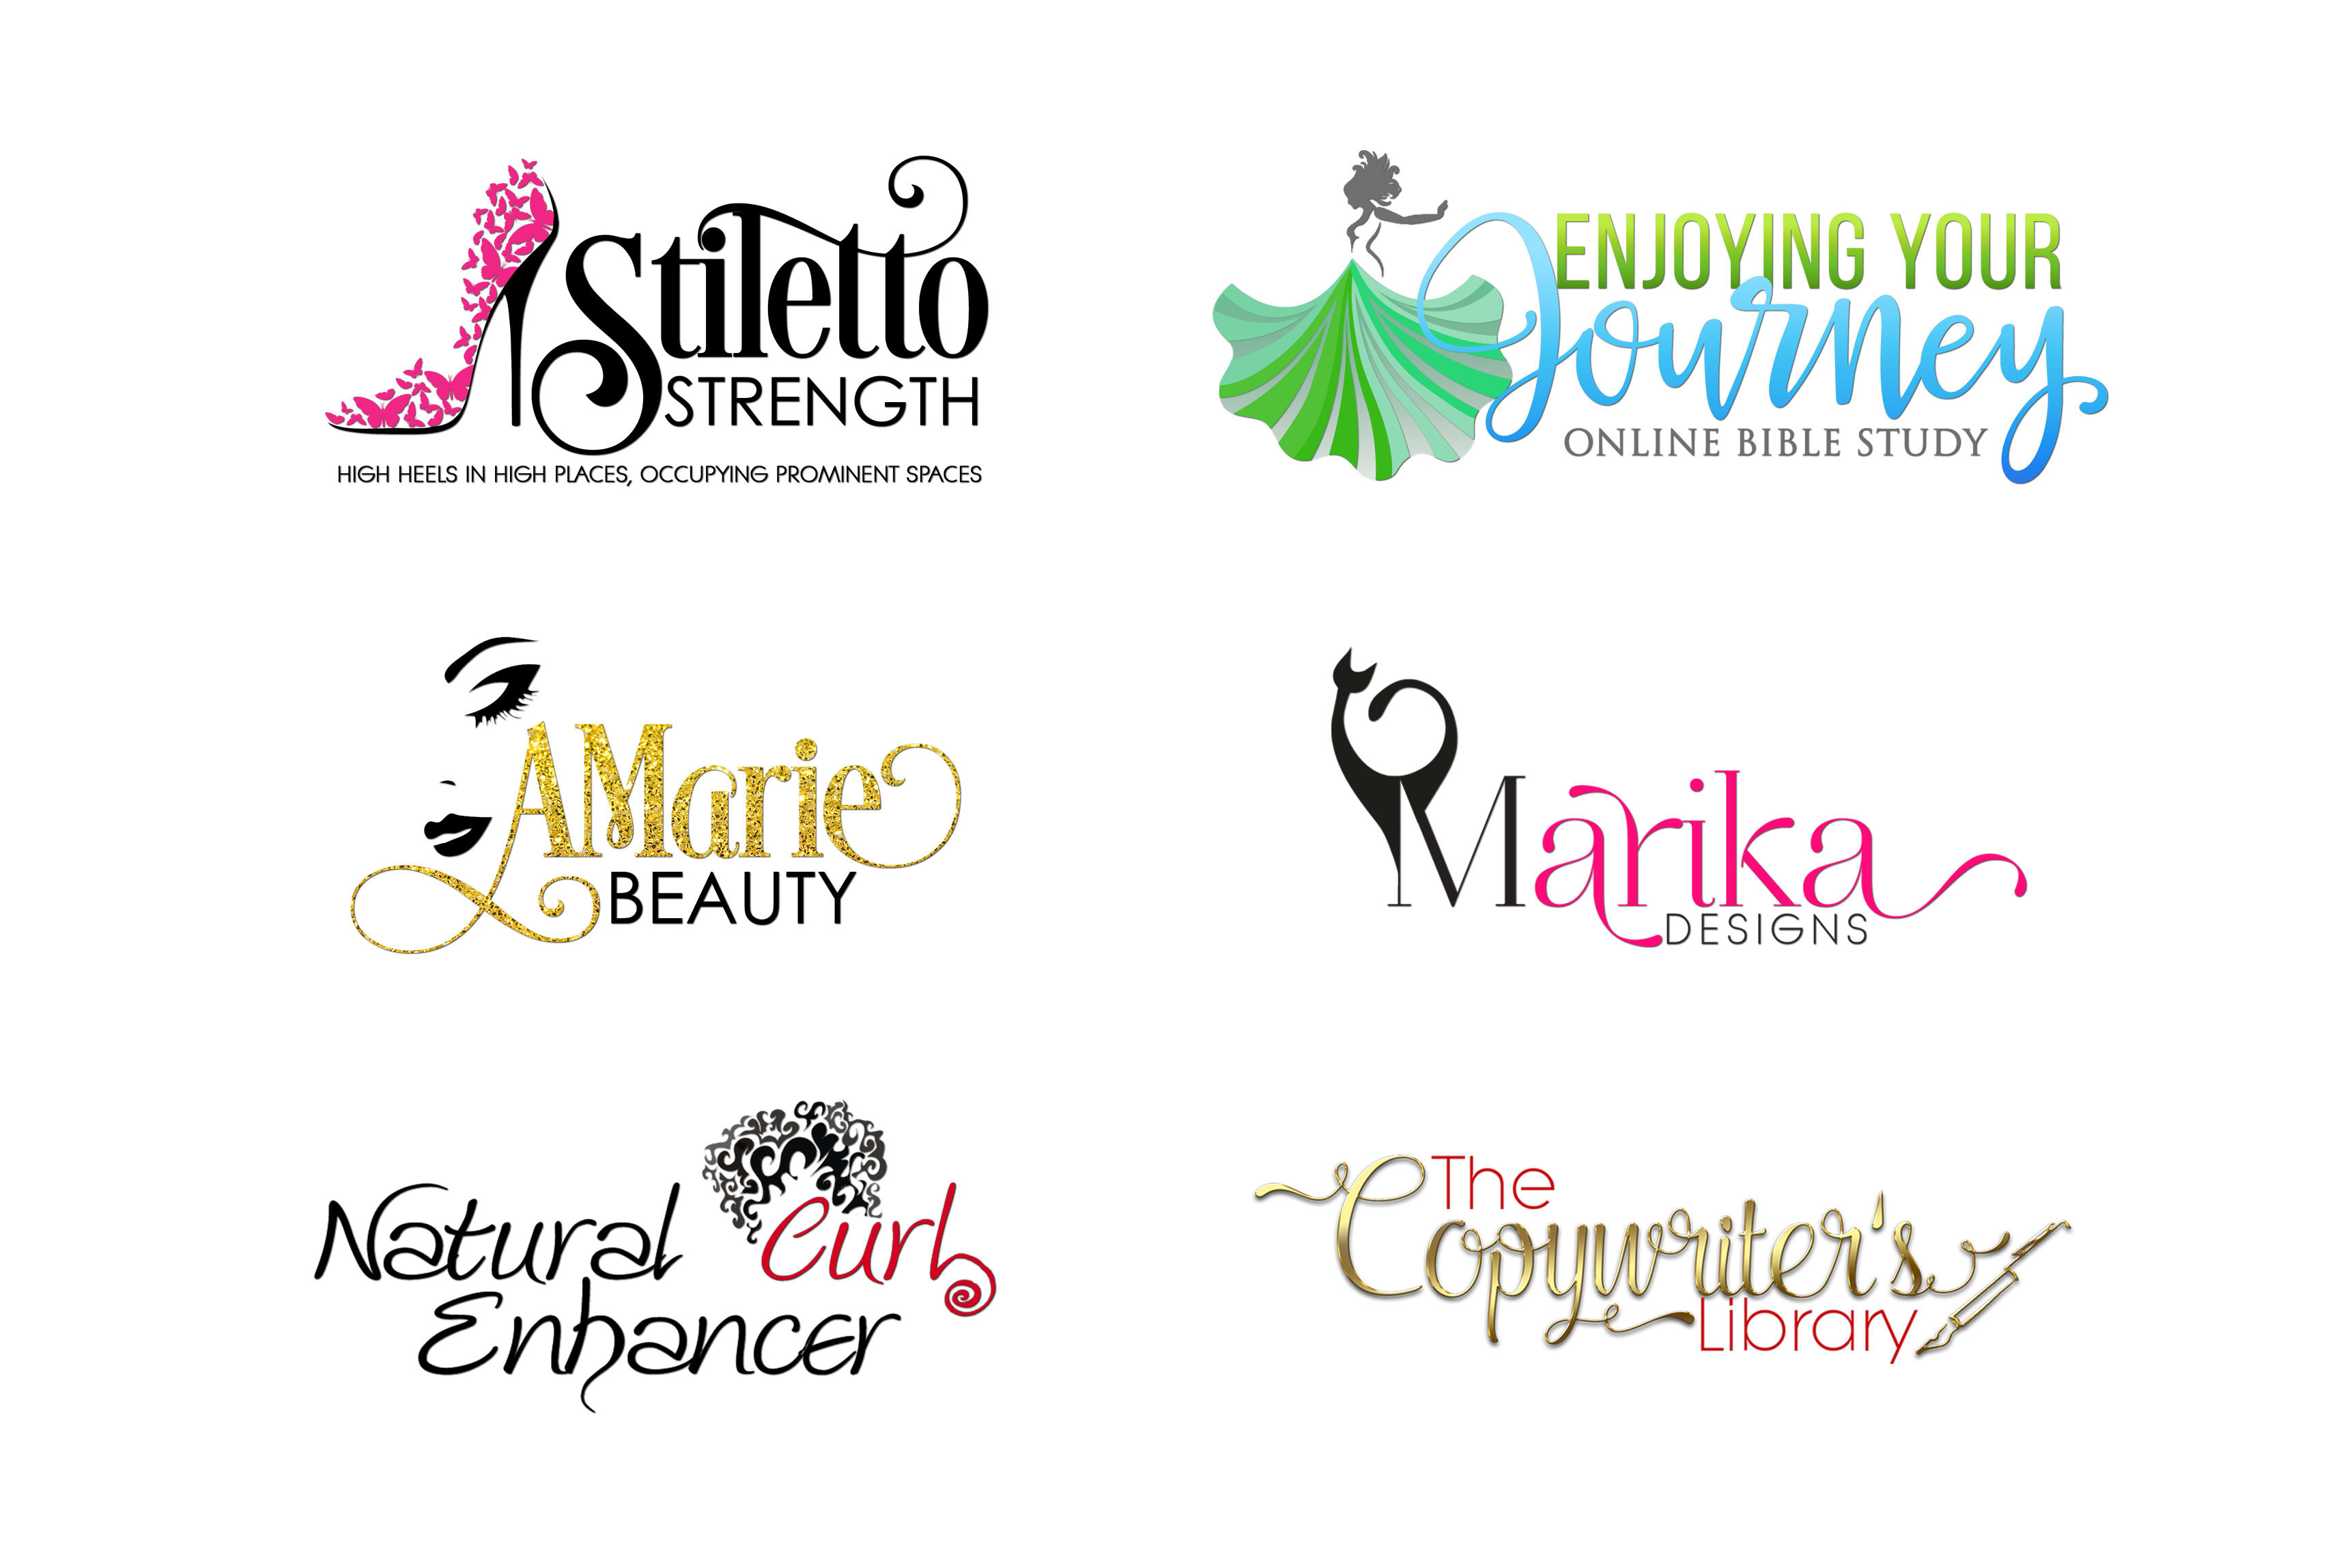 fiverr for logo design